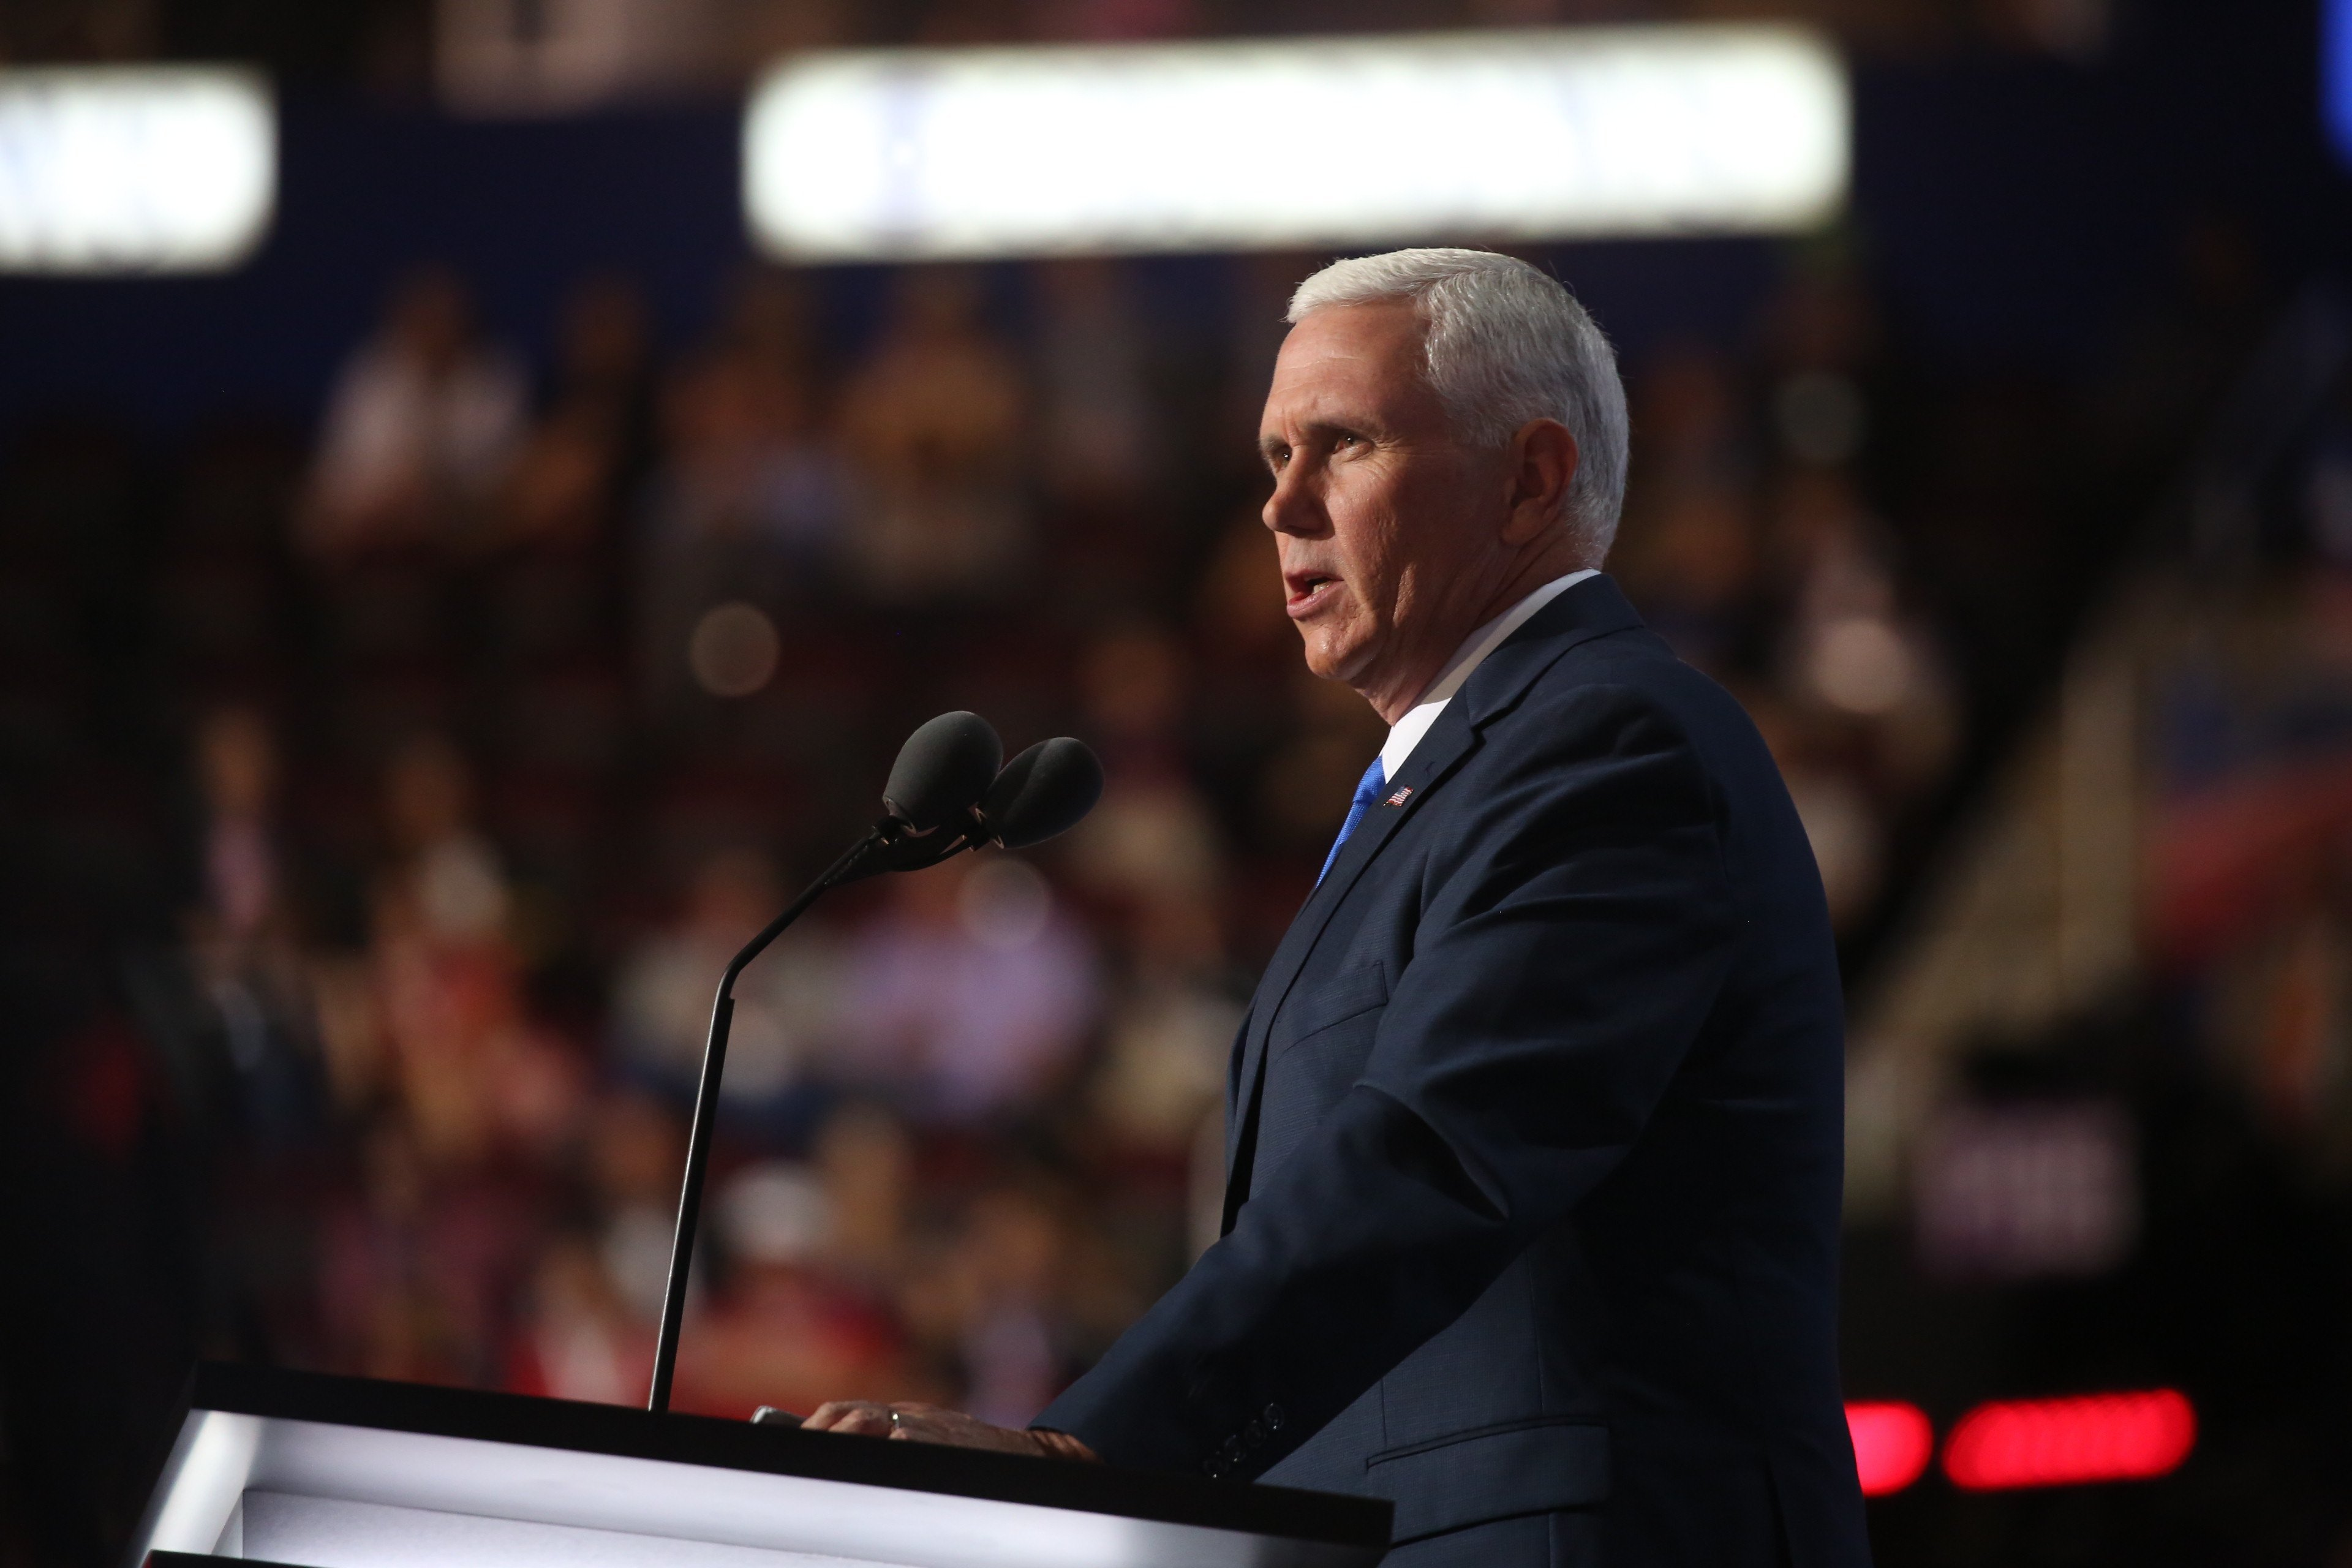 Republican Indiana Governor and Vicep President nominee Mike Pence speaks at the Republican National Convention in Cleveland Ohio on Wednesday